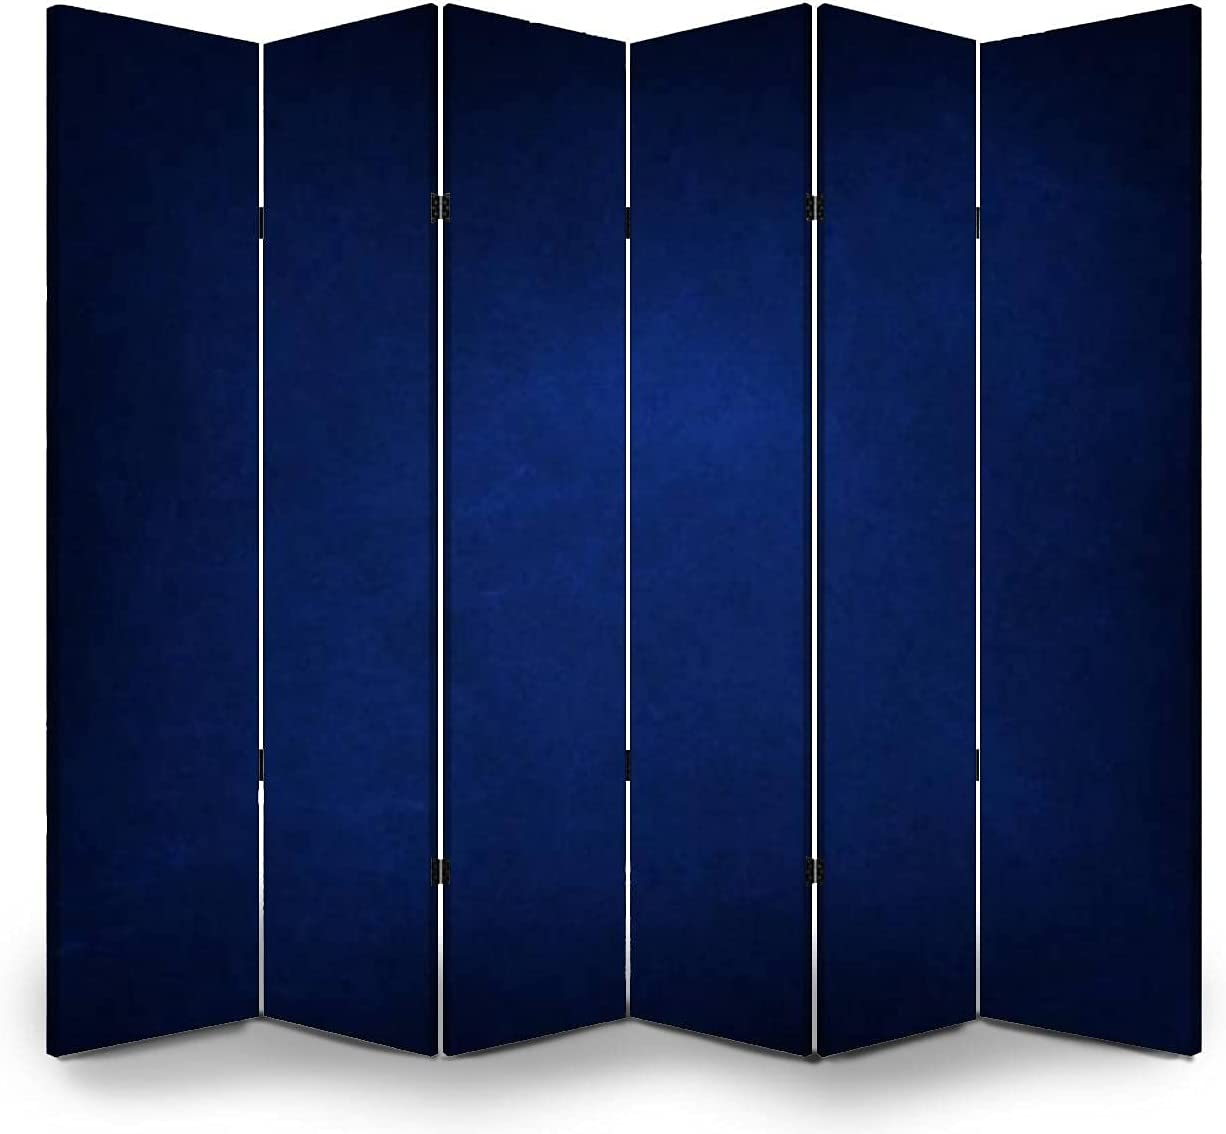 6 Panels Room Divider Screen Houston Mall Partition of Old Oakland Mall Blue Texture Navy